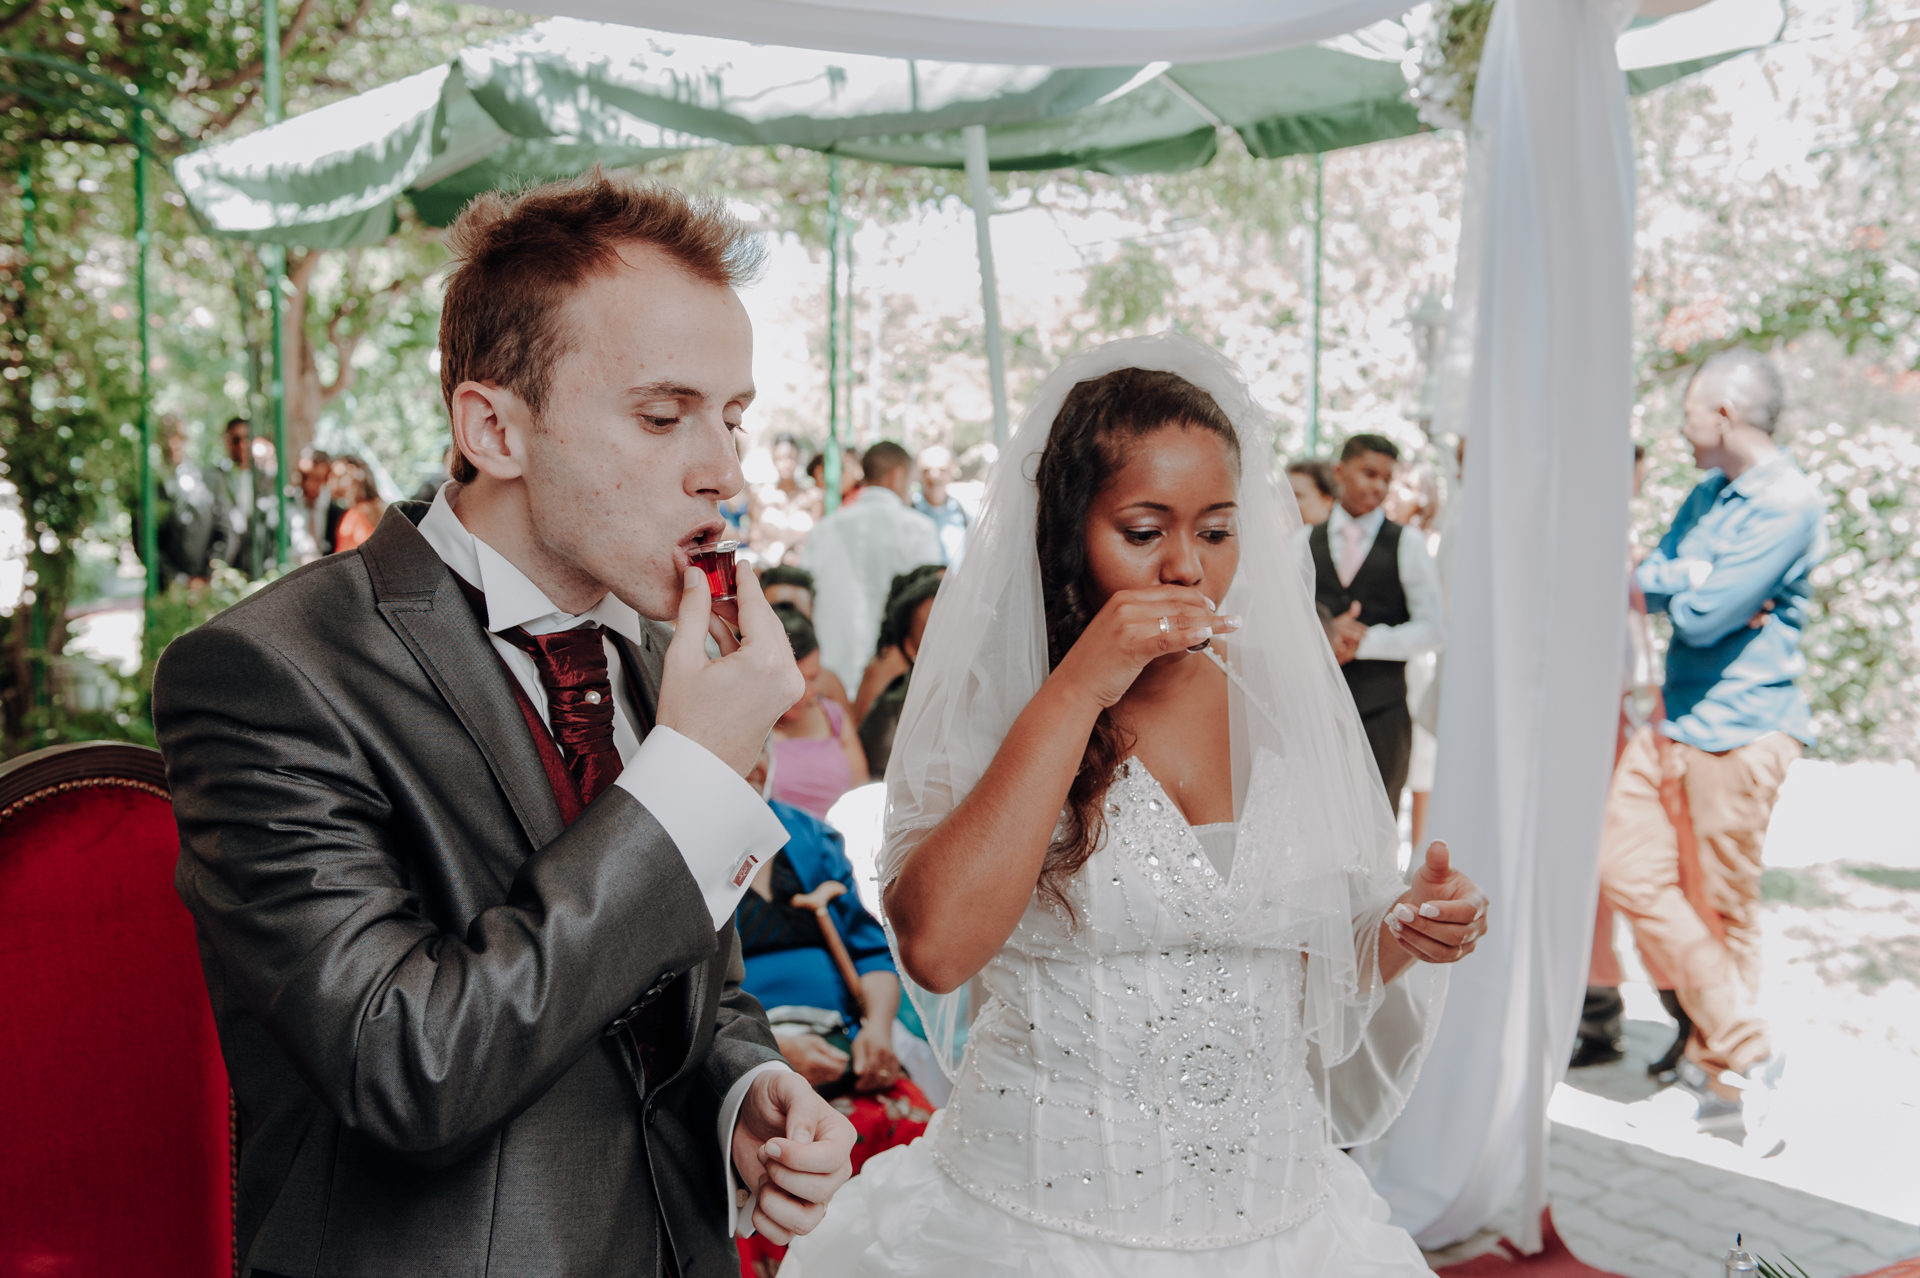 Professional Photographers in Lisbon | The bride and groom sip a red beverage that symbolizes the Blood of Christ